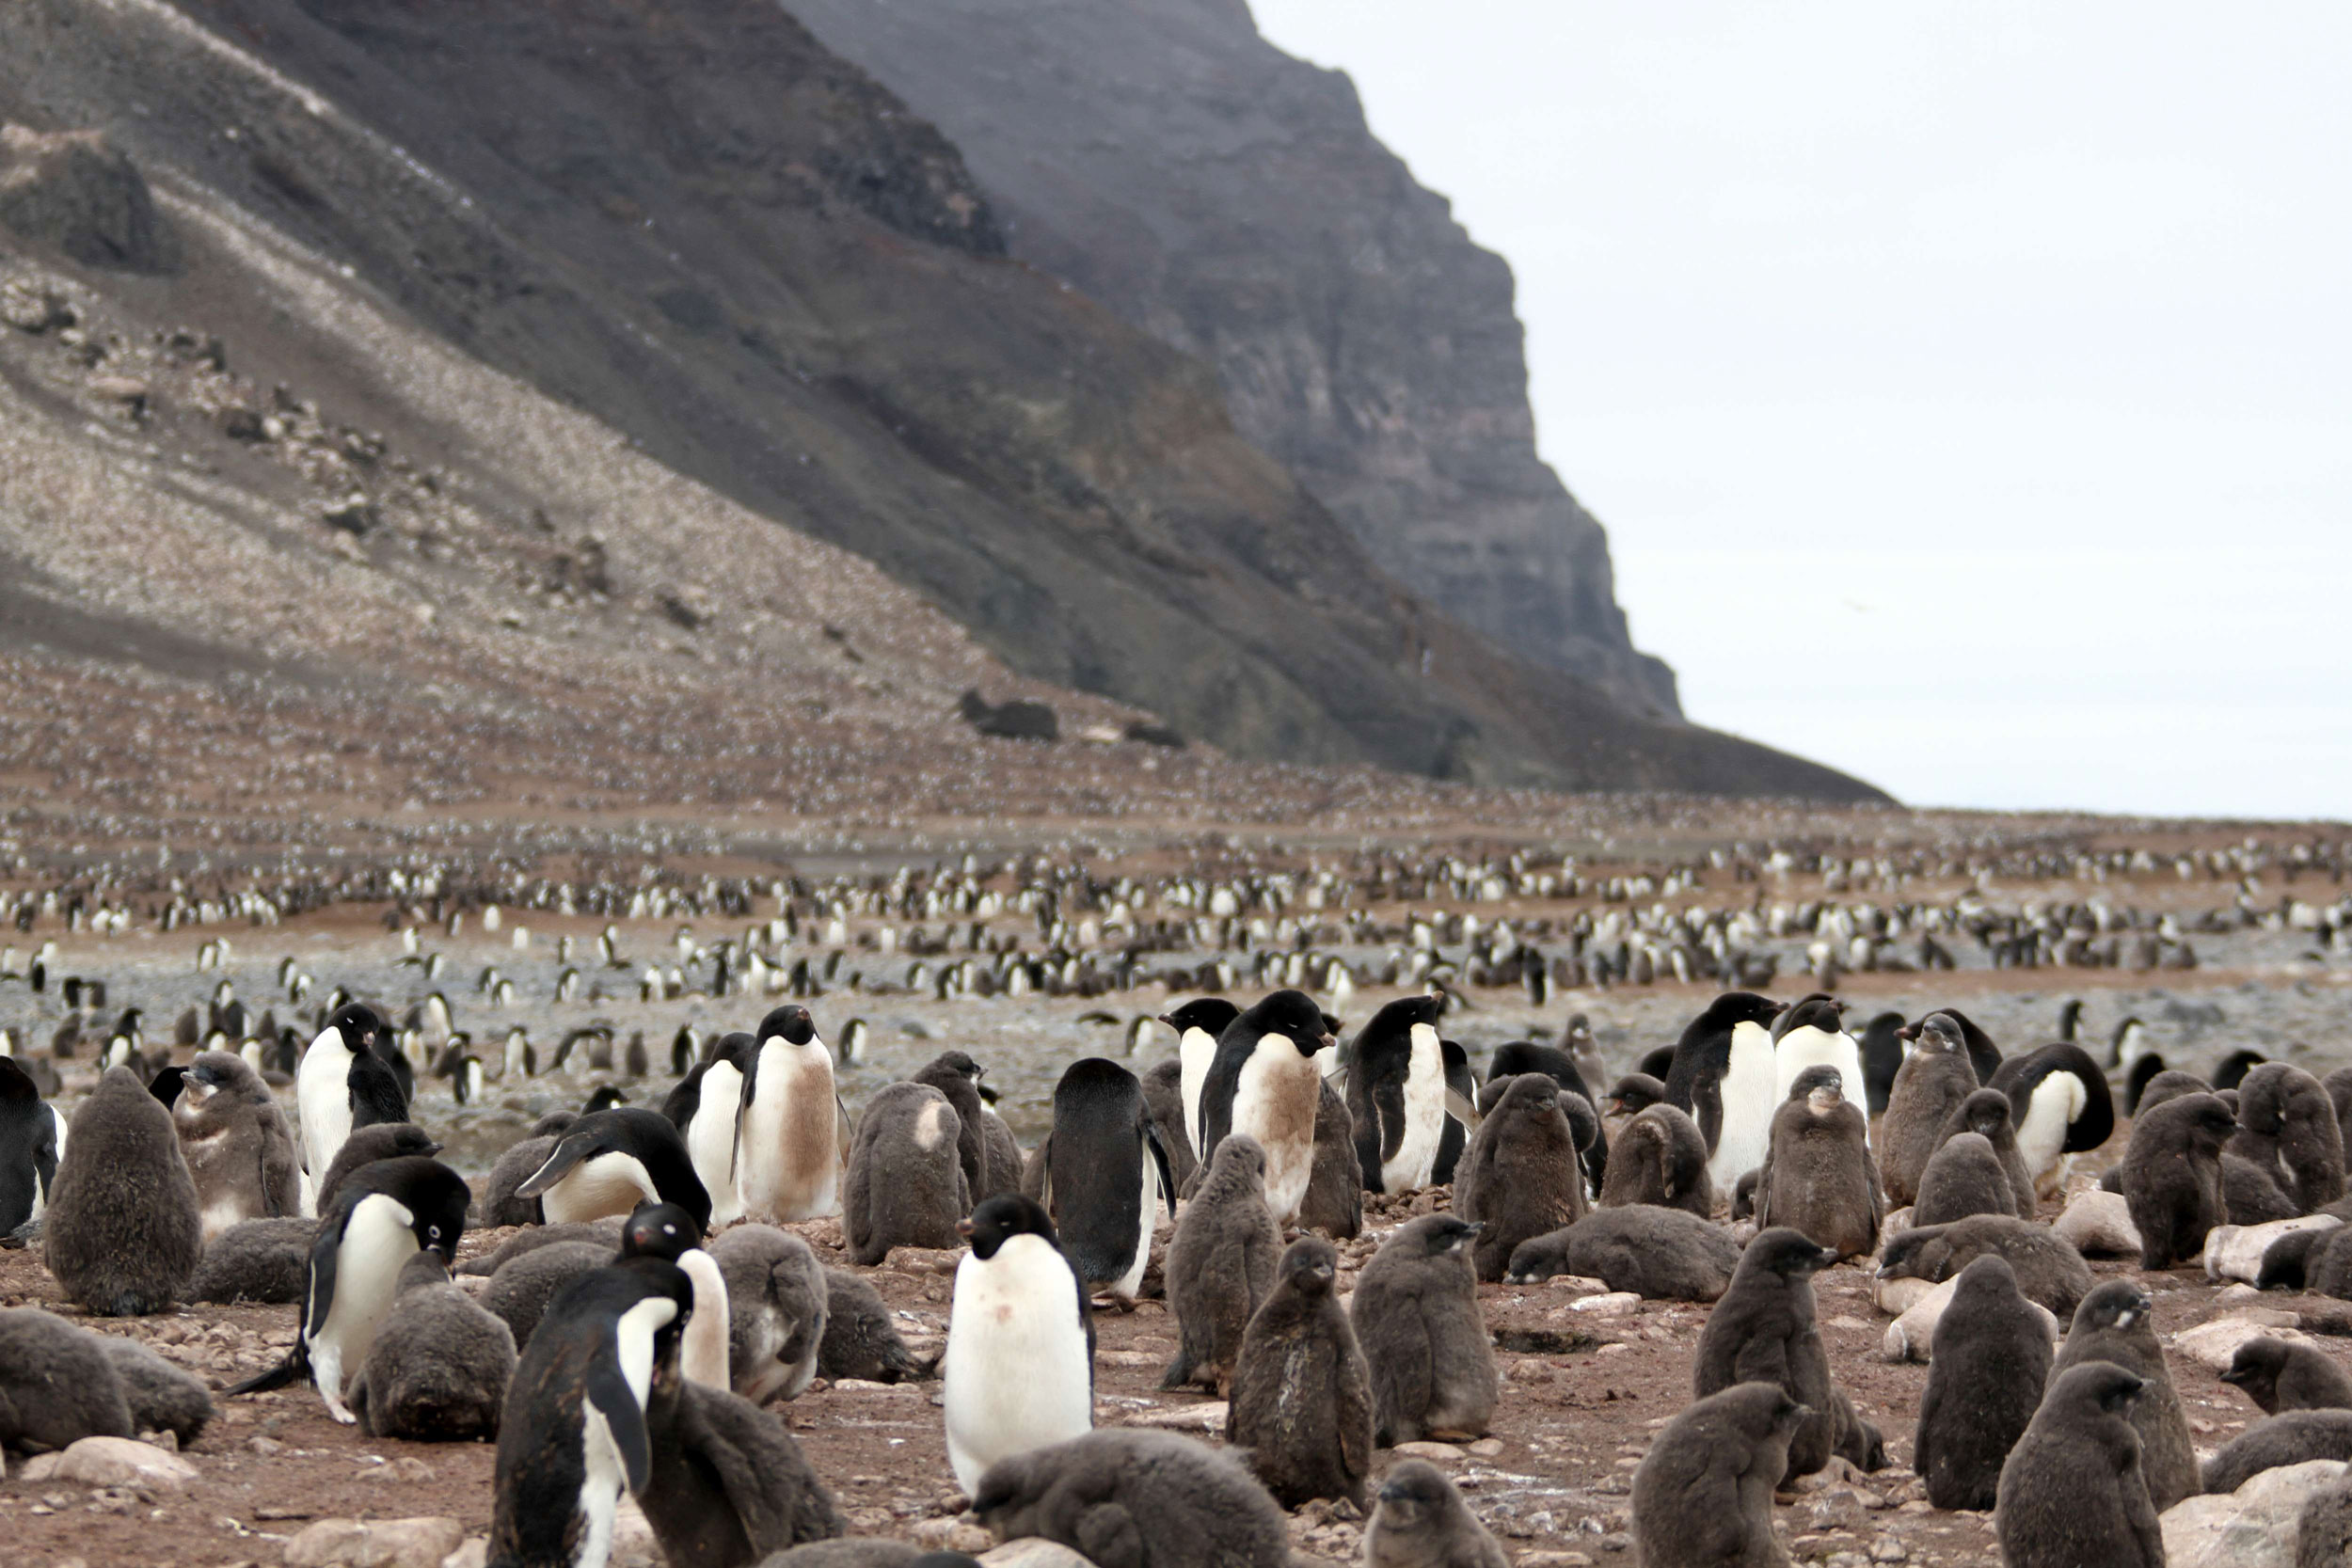 A massive colony of Adelie penguins with chicks on Franklin Island.